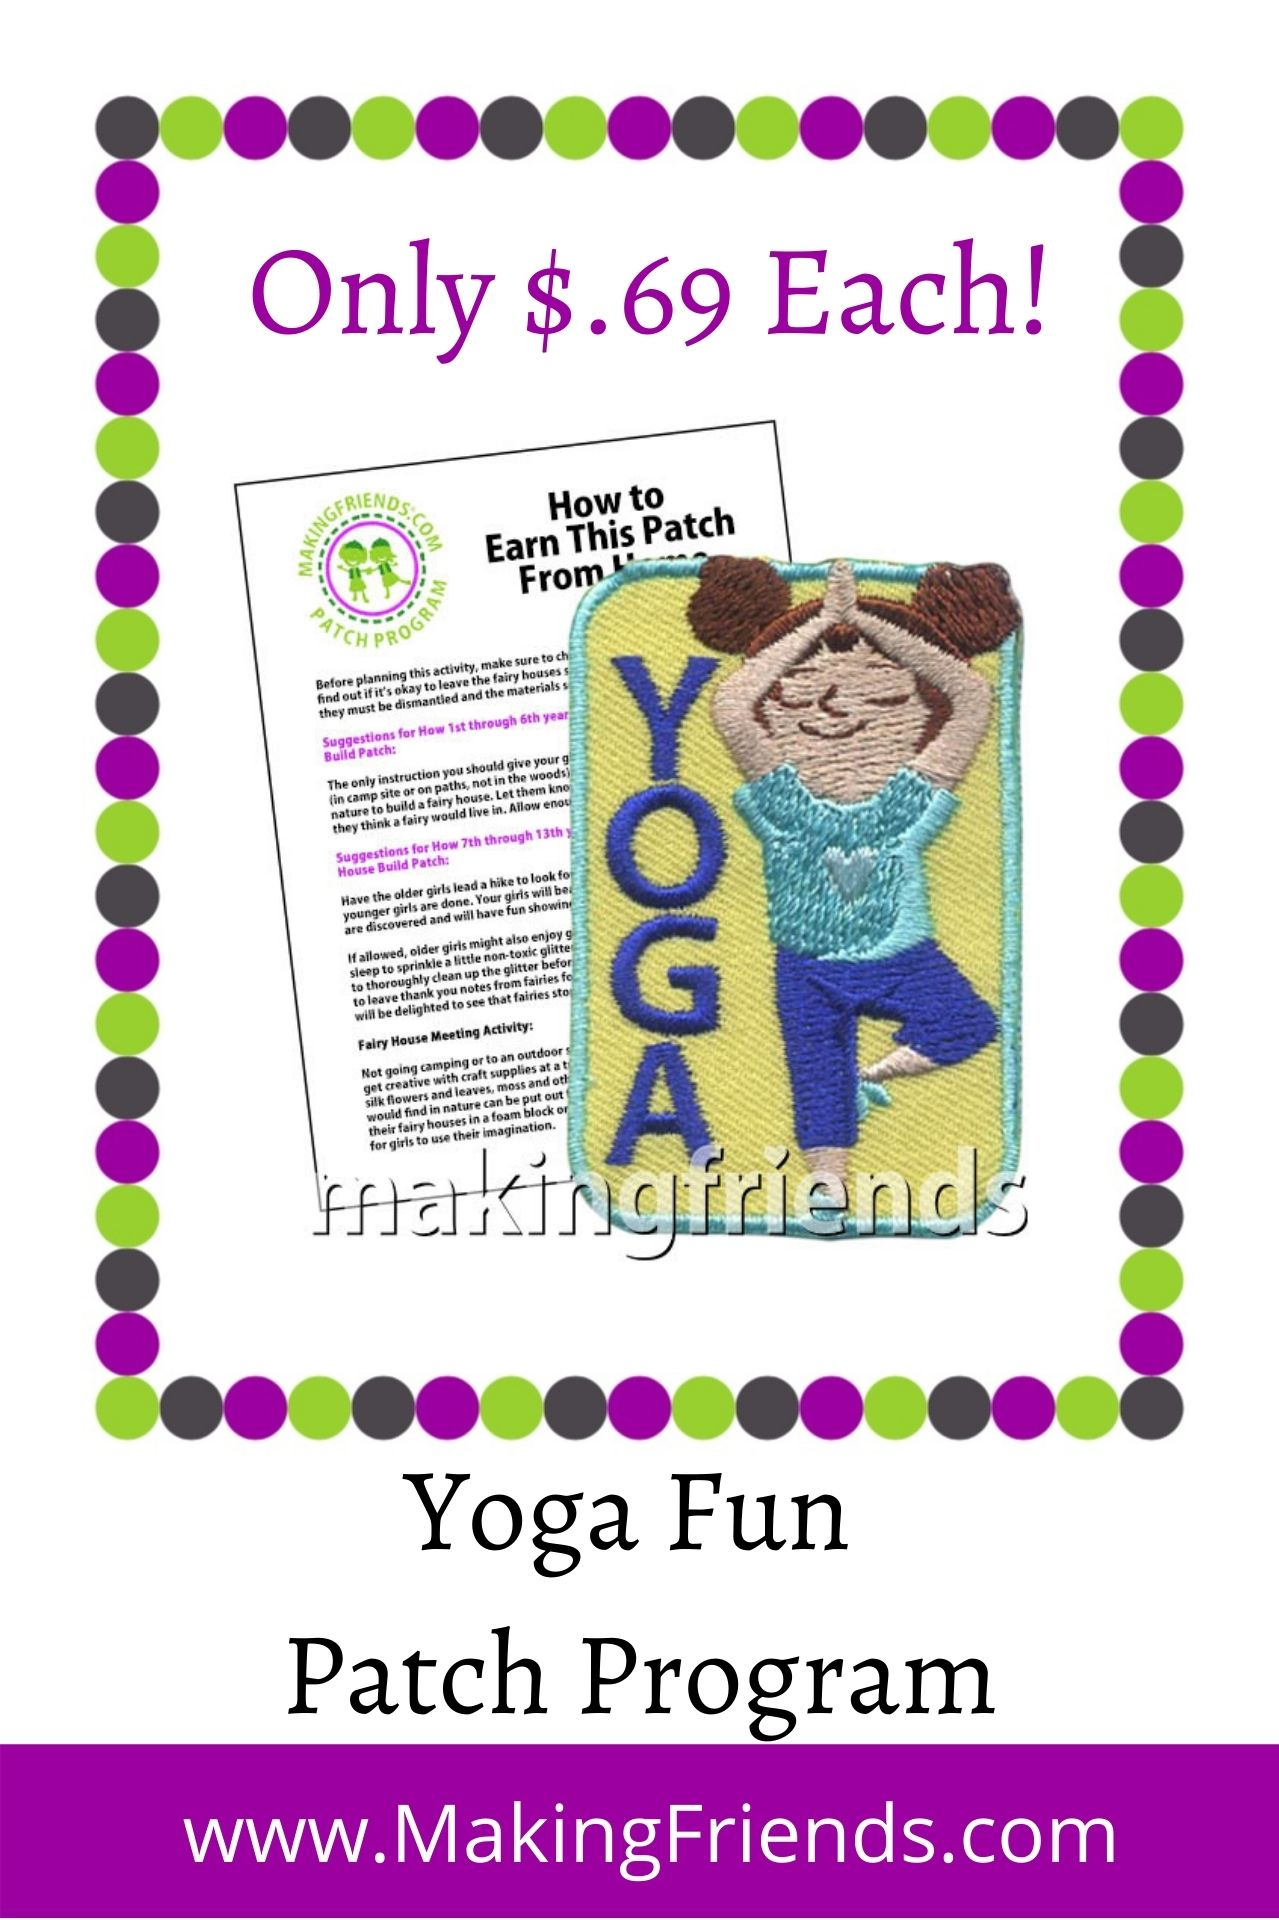 Teach your girls about keeping a healthy body and mind through yoga! Experts and beginners will love this! $.69 each, free shipping available! #makingfriends #yoga #girlscouts #gspatches #patchprogram #behealthy #funpatch #girlscoutactivity via @gsleader411